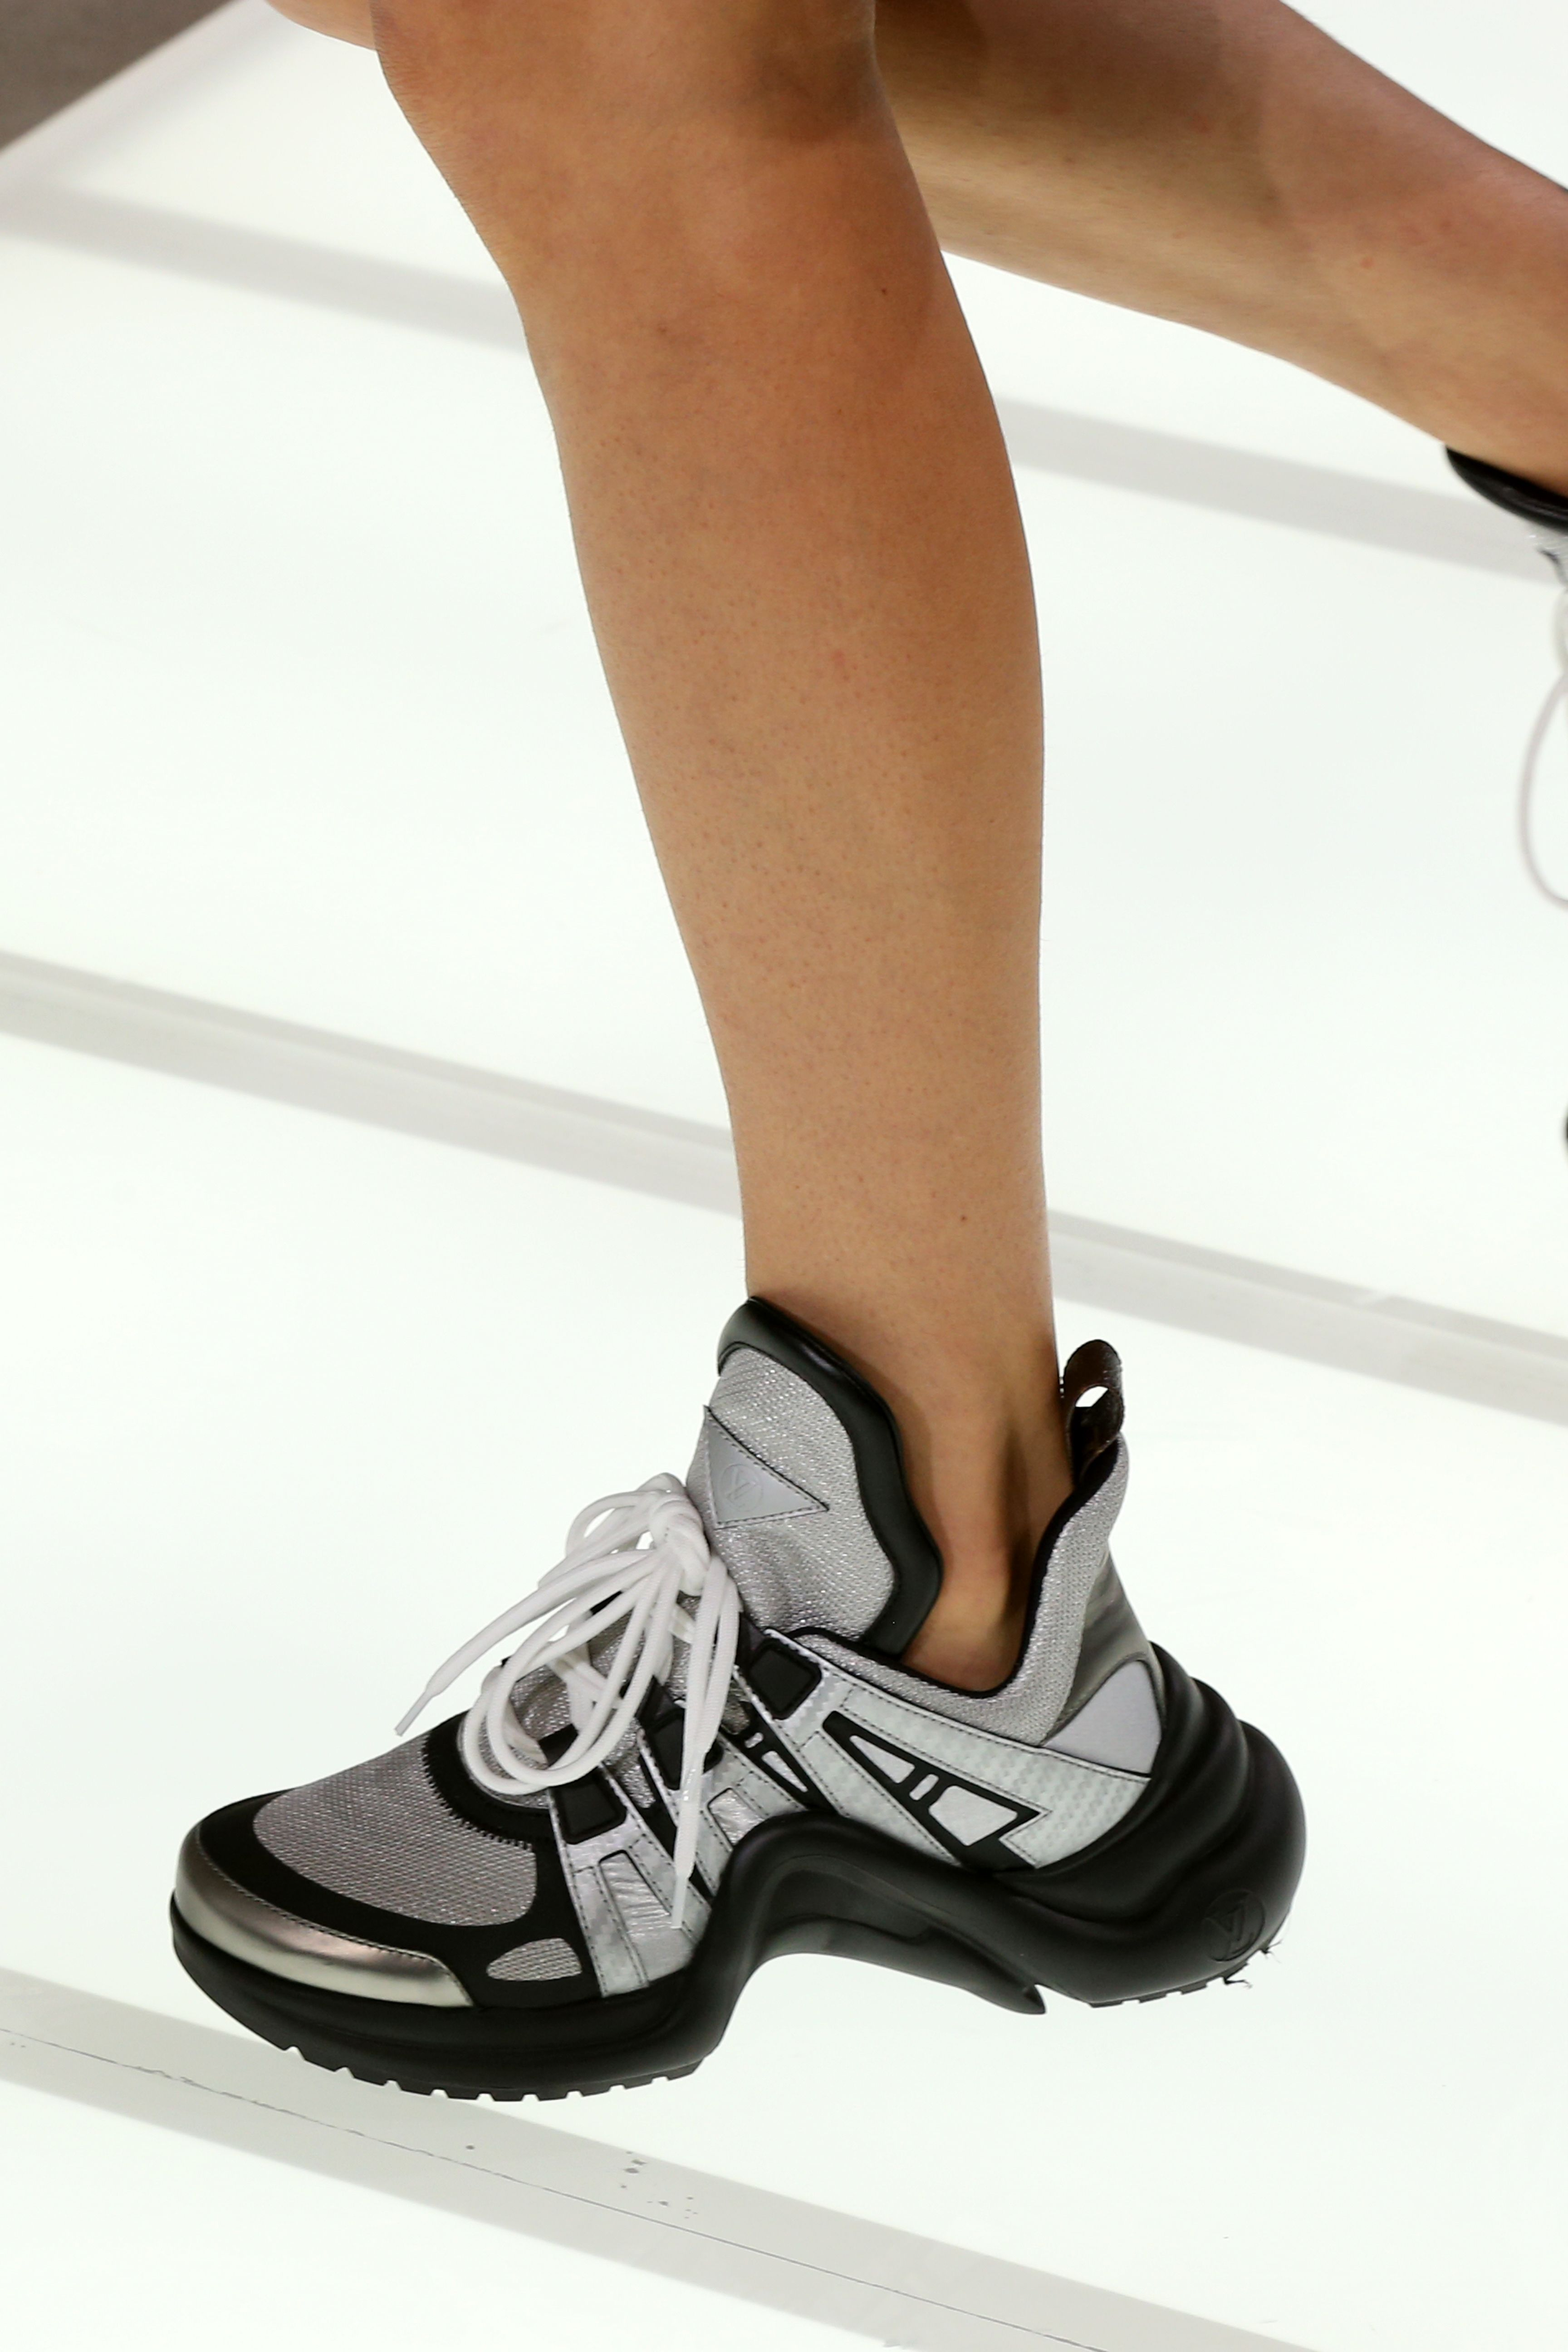 Sneakers from the Louis Vuitton Spring-Summer 2018 Show by Nicolas  Ghesquiere. Watch the show now at louisvuitton.com. 2b5eac40752